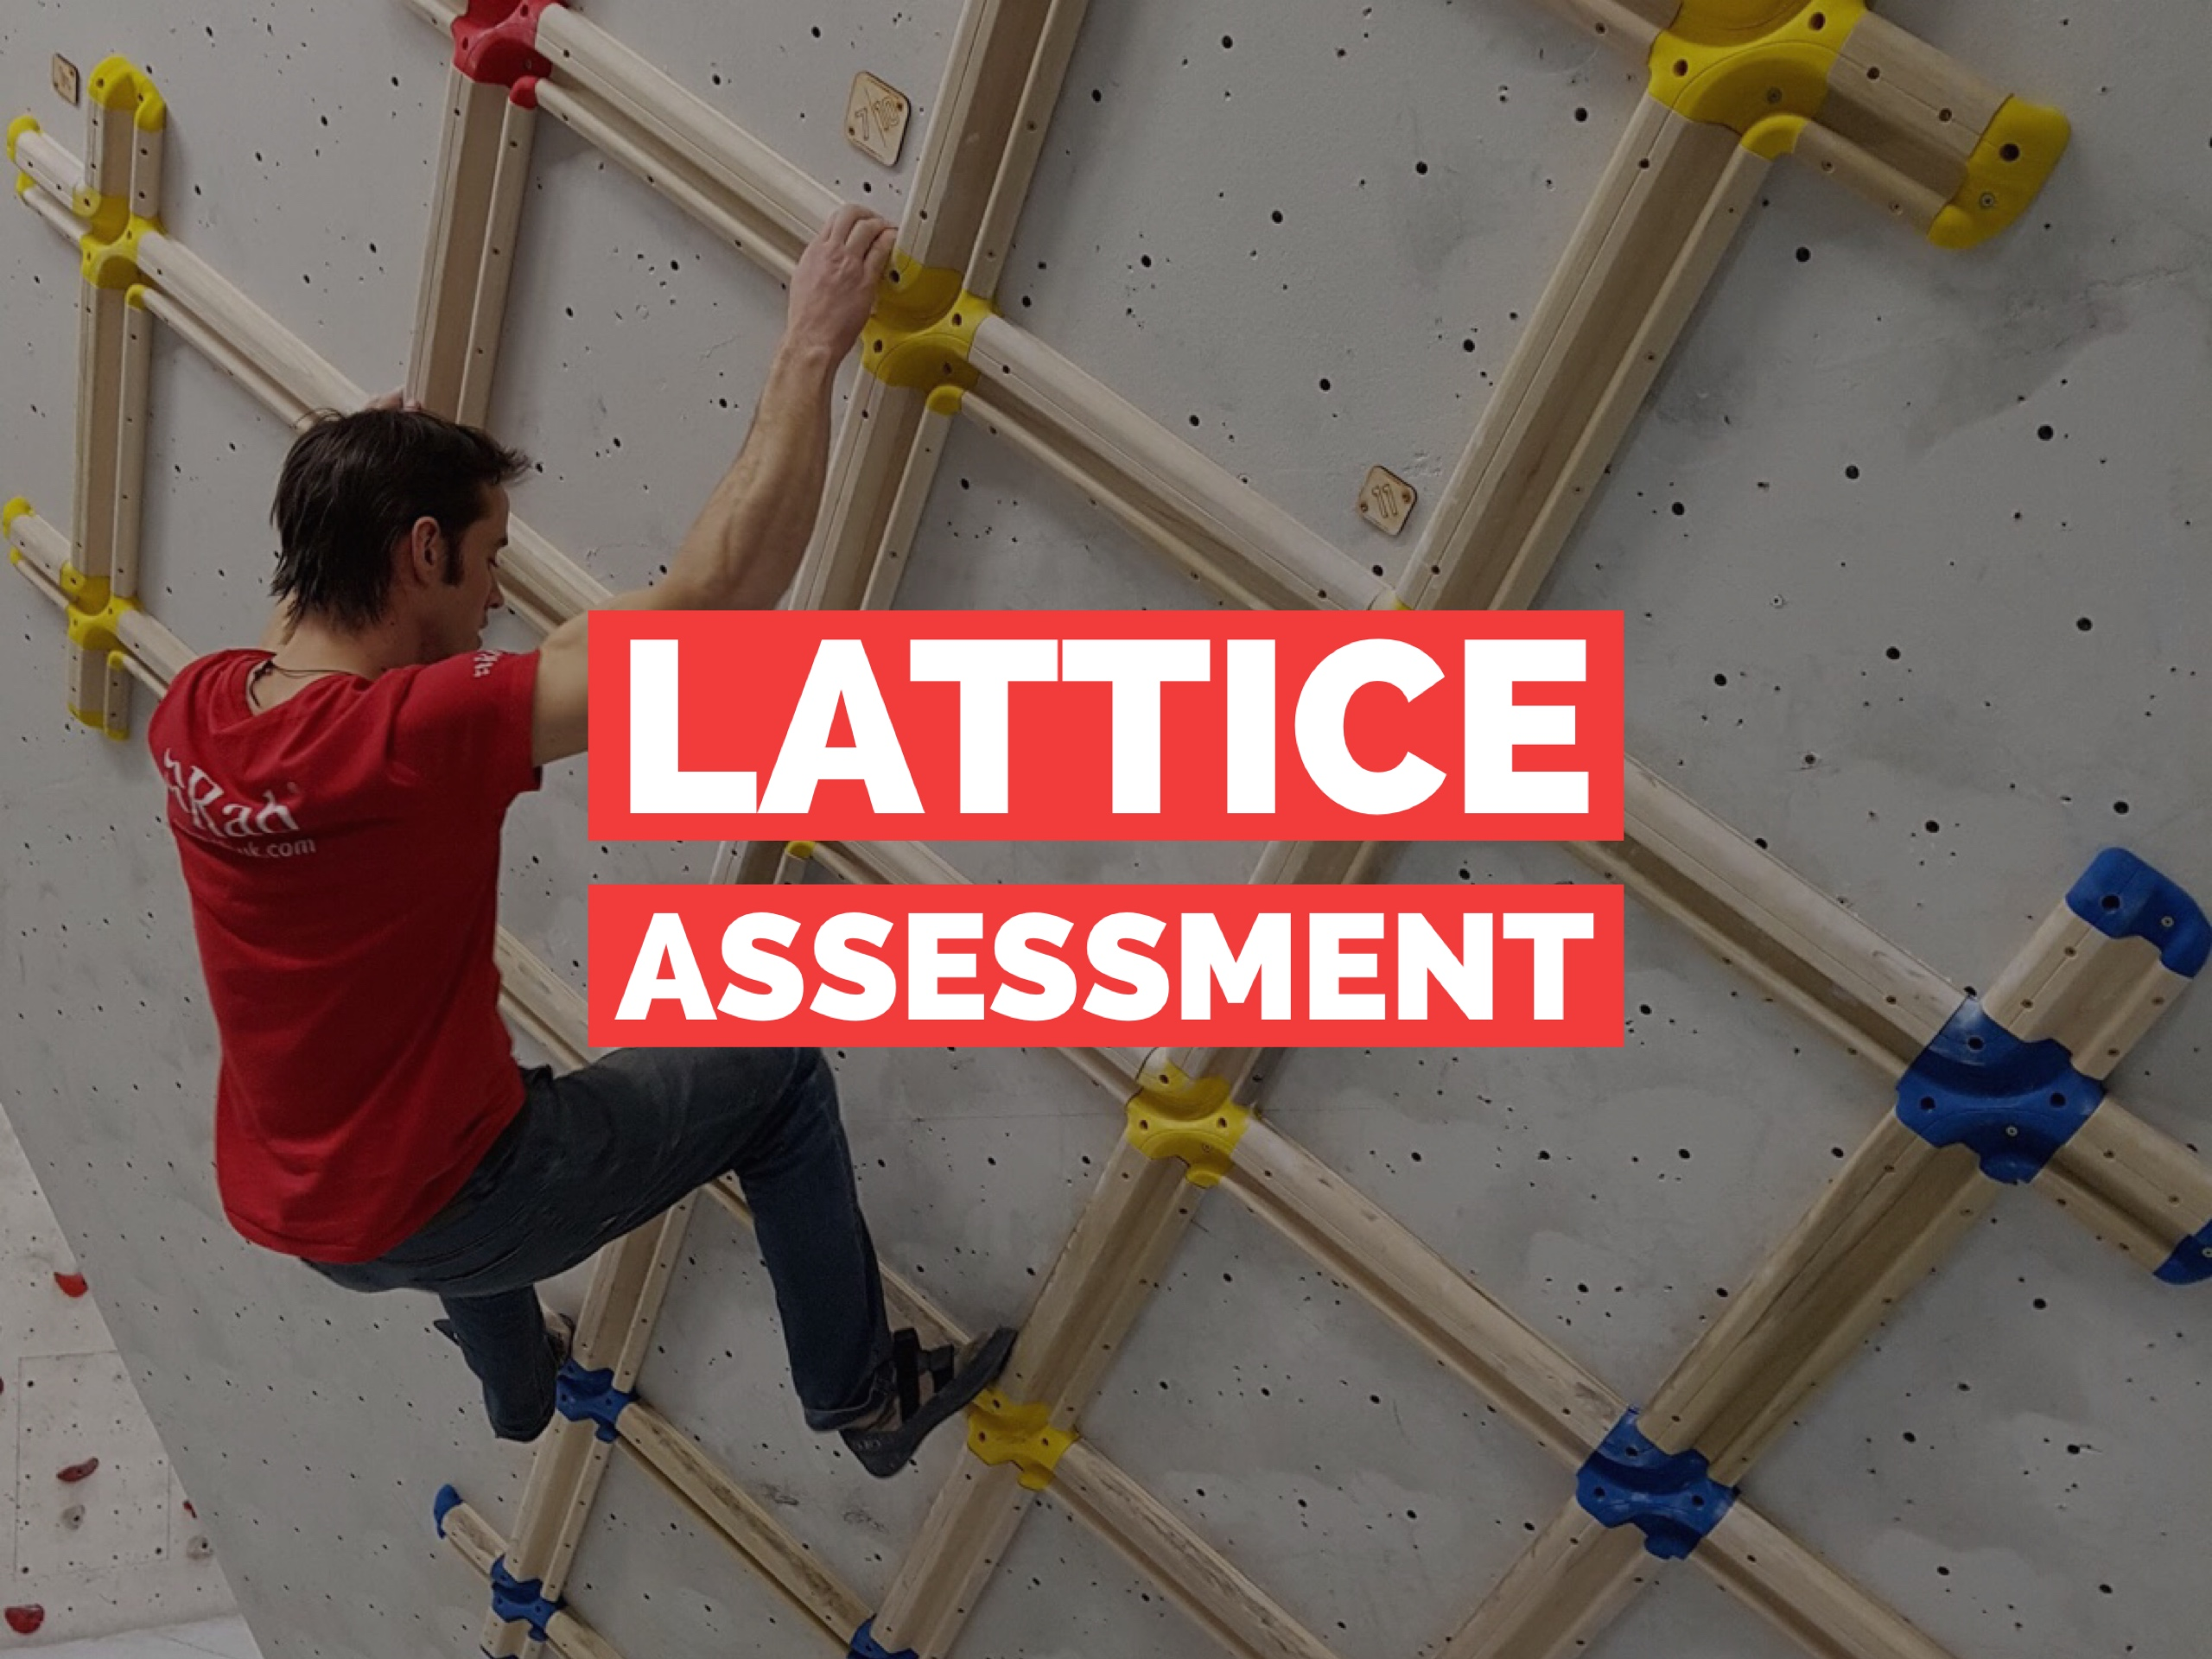 Lattice Assessment Ireland Dublin Awesome Walls